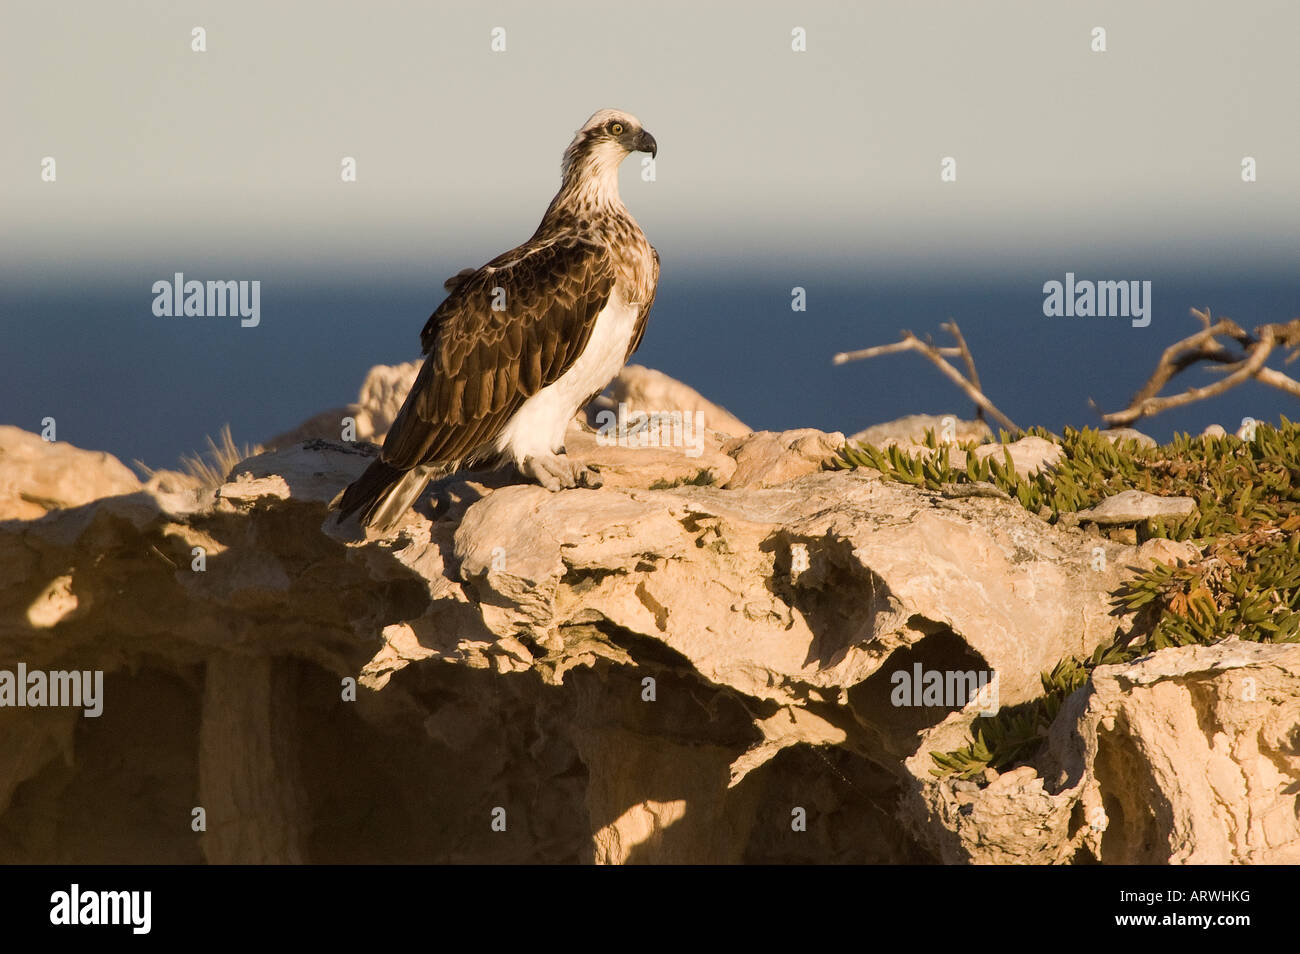 Lone Osprey nesting on a cliff Pandion haliaetus adult pair at nest or eyrie feeding chick Stock Photo